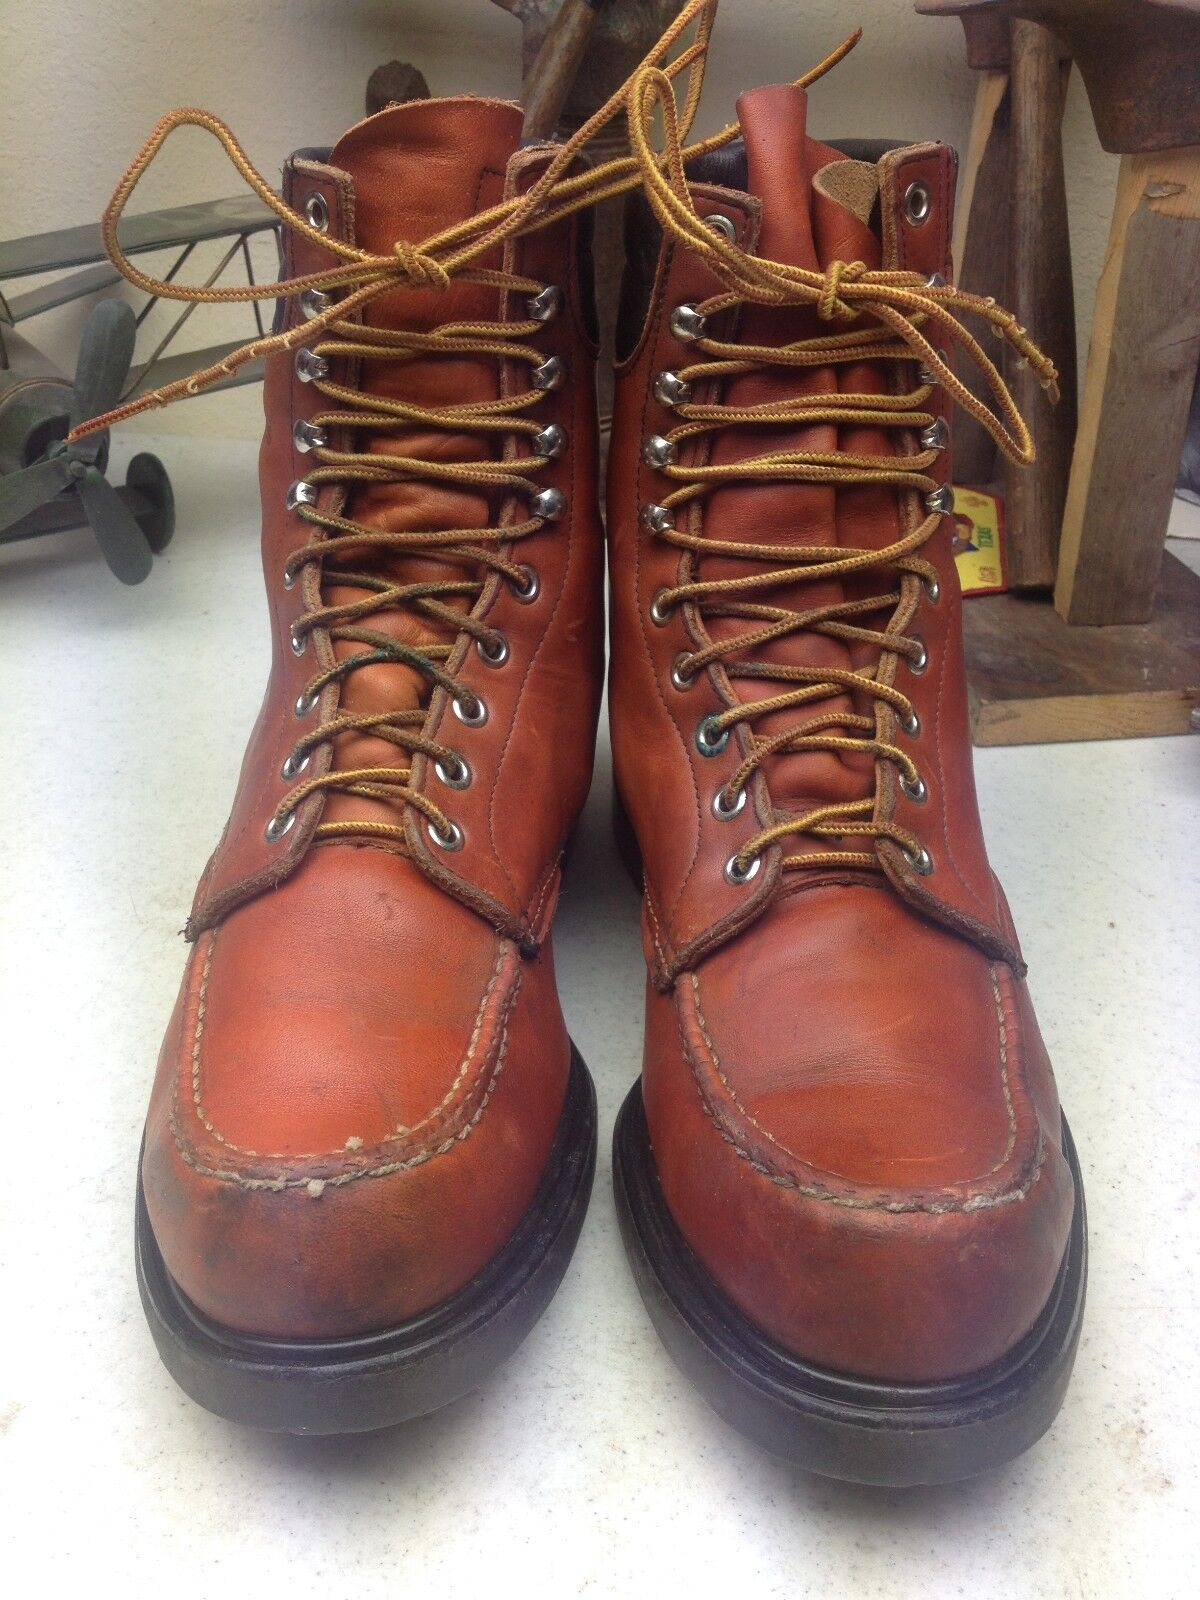 OXBLOOD  ROSSO WING VINTAGE MADE IN USA ENGINEER TRAIL BOSS BOOTS 9-10.5 M D